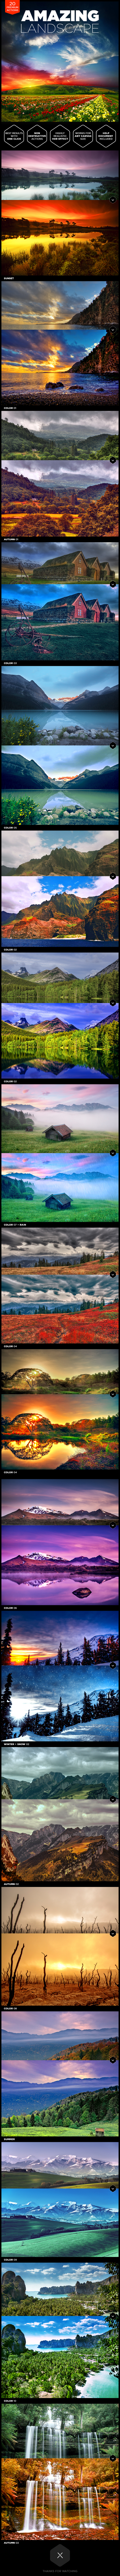 Landscape Photoshop Actions - Photo Effects Actions